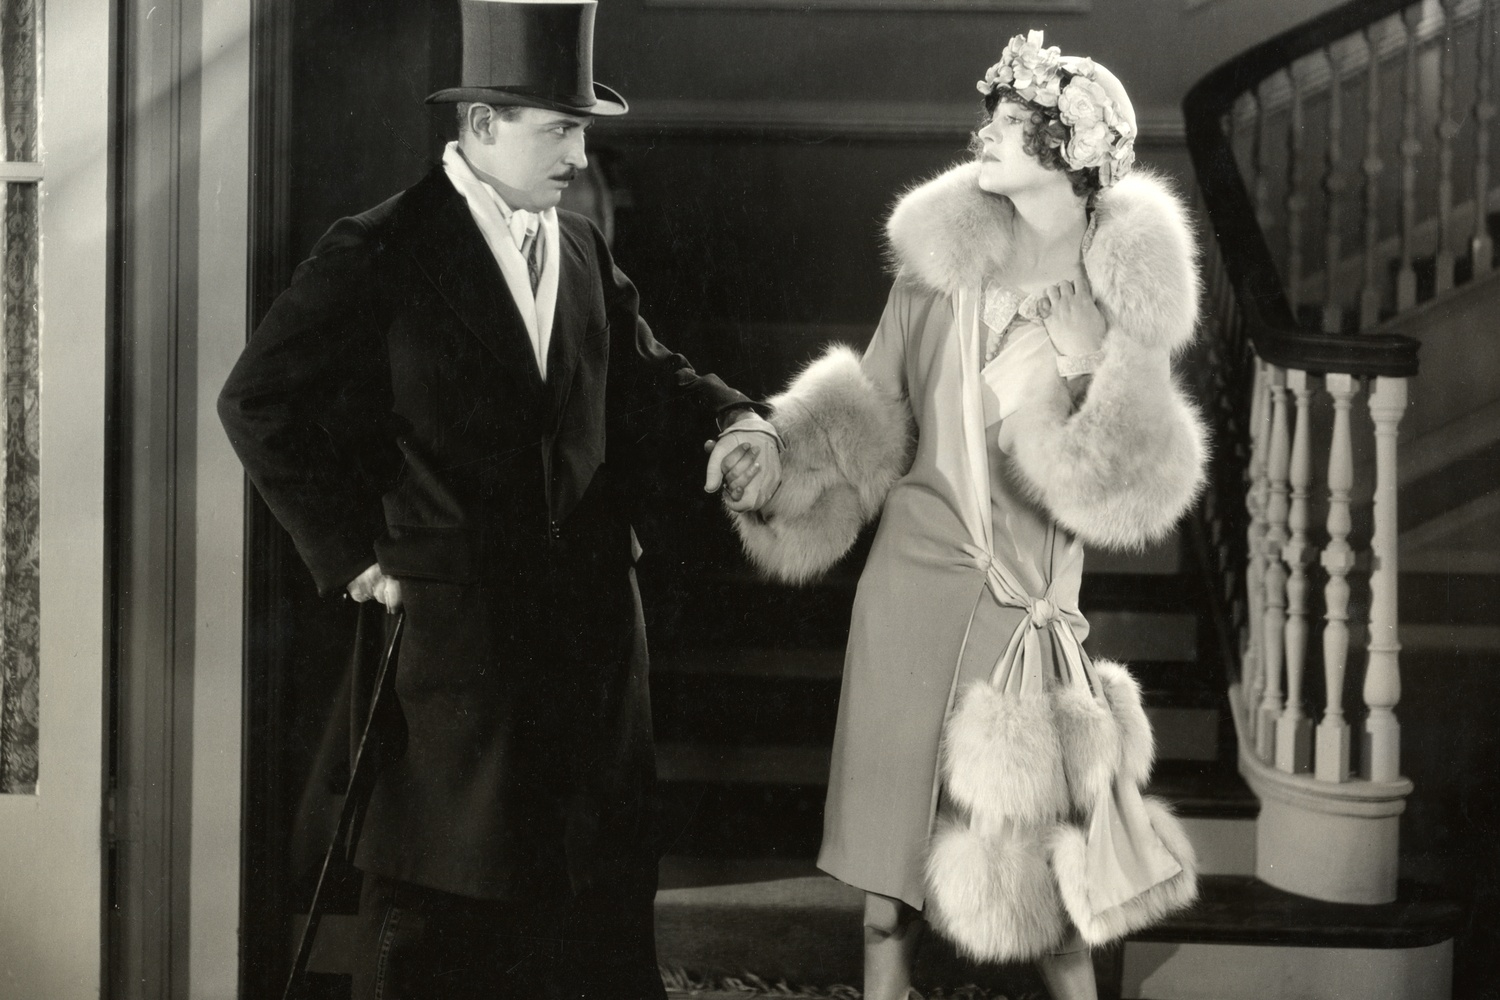 Paths to Paradise. 1925. USA. Directed by Clarence G. Badger. Courtesy of The Museum of  Modern Art